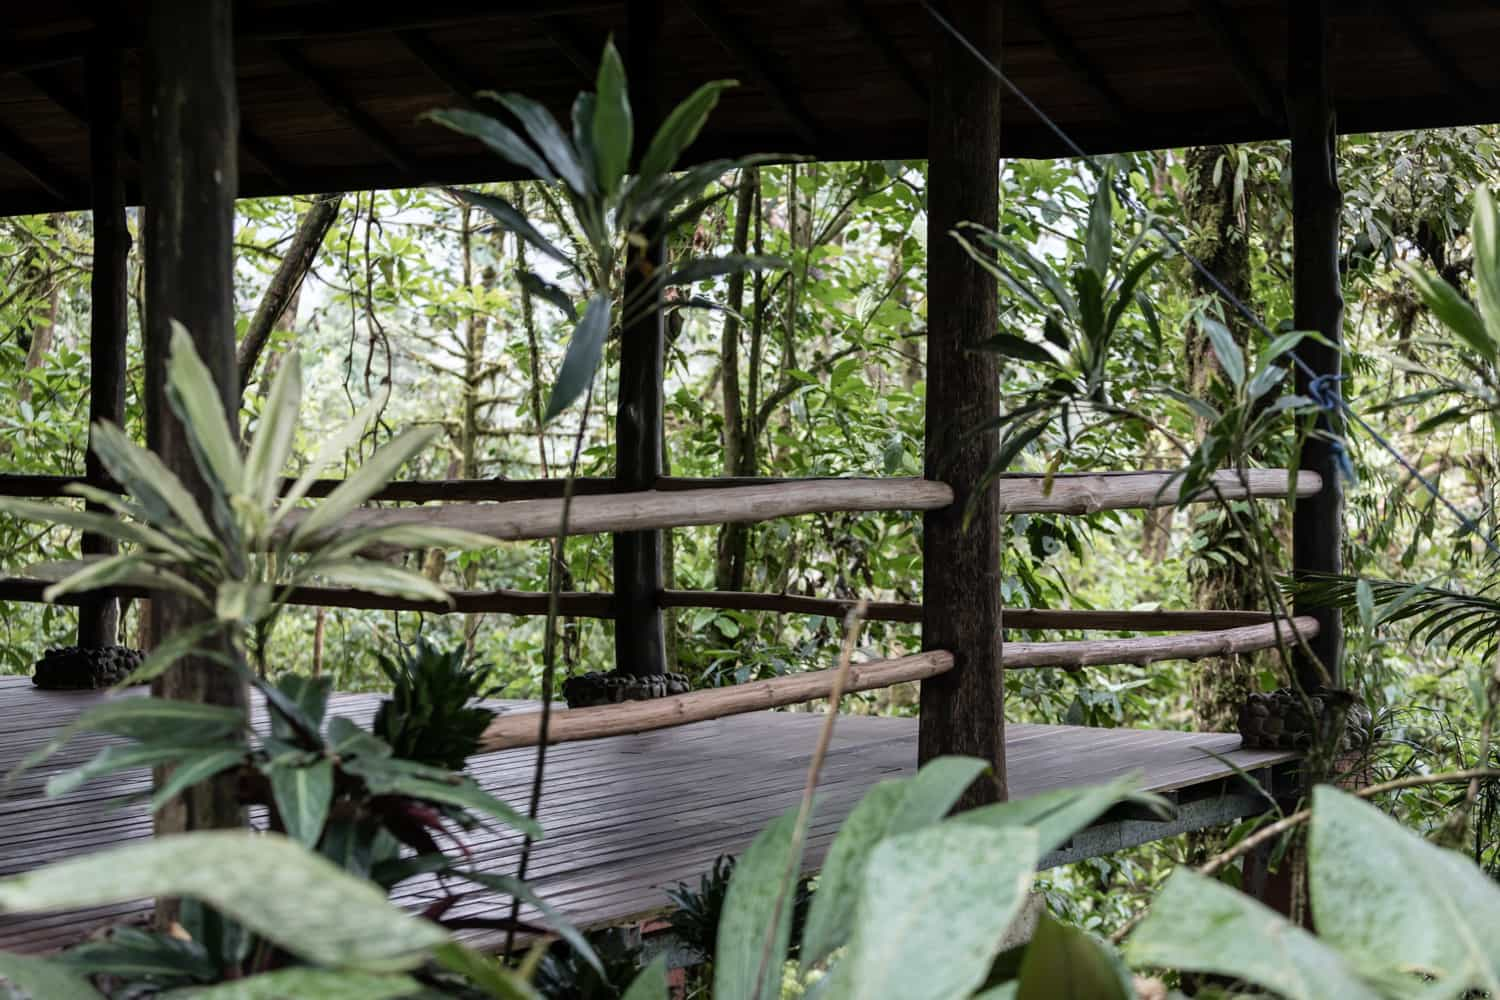 Side view of pavilion in rainforest for wedding ceremonies.